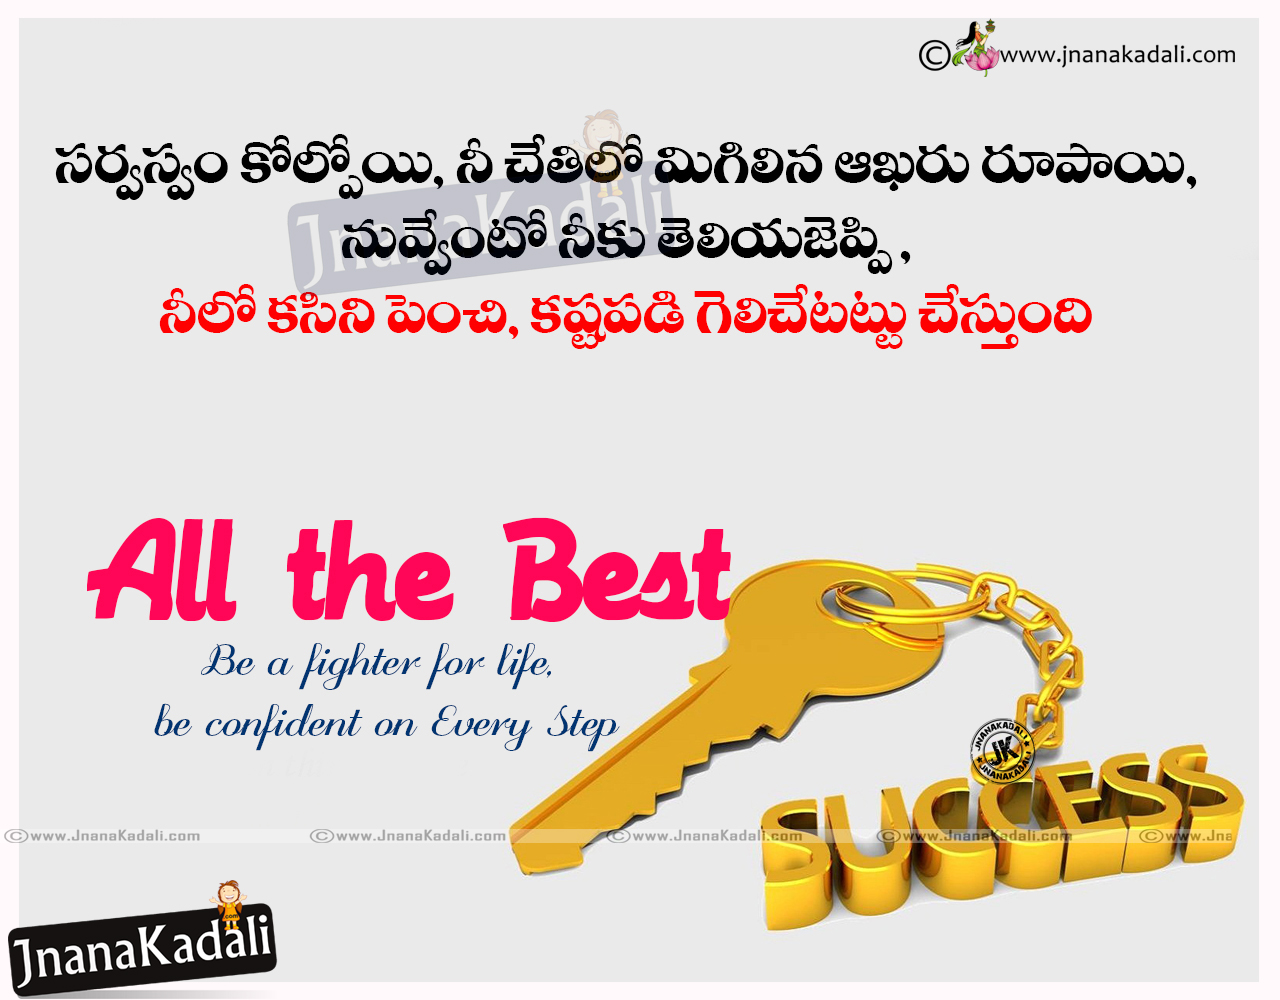 All the best wishes telugu greetings sms quotes hd images brainysms all the best life success sayings for brother goal winning motivational sayings in telugu kristyandbryce Image collections